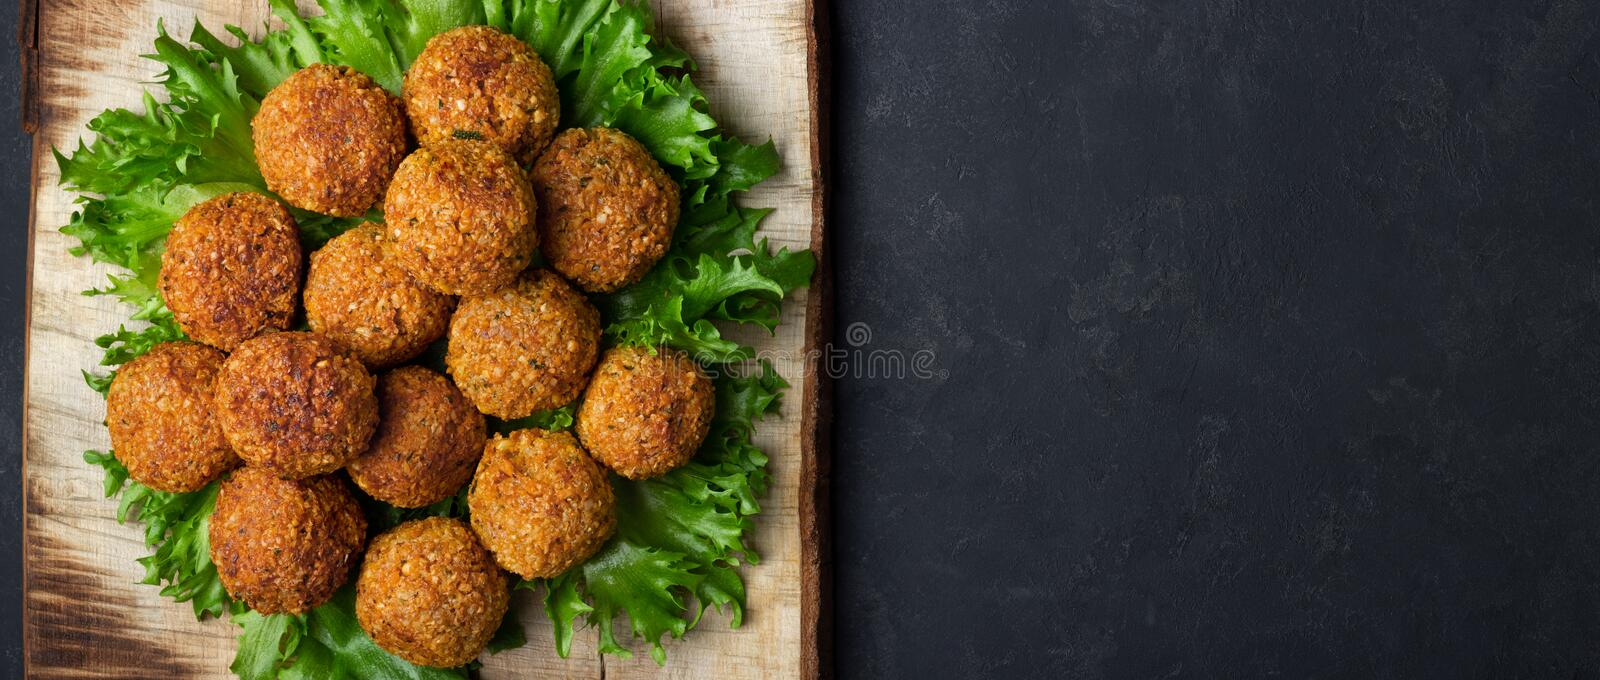 Vegetarian chickpeas falafel balls on wooden rustic board. Traditional Middle Eastern and arabian food. royalty free stock photo